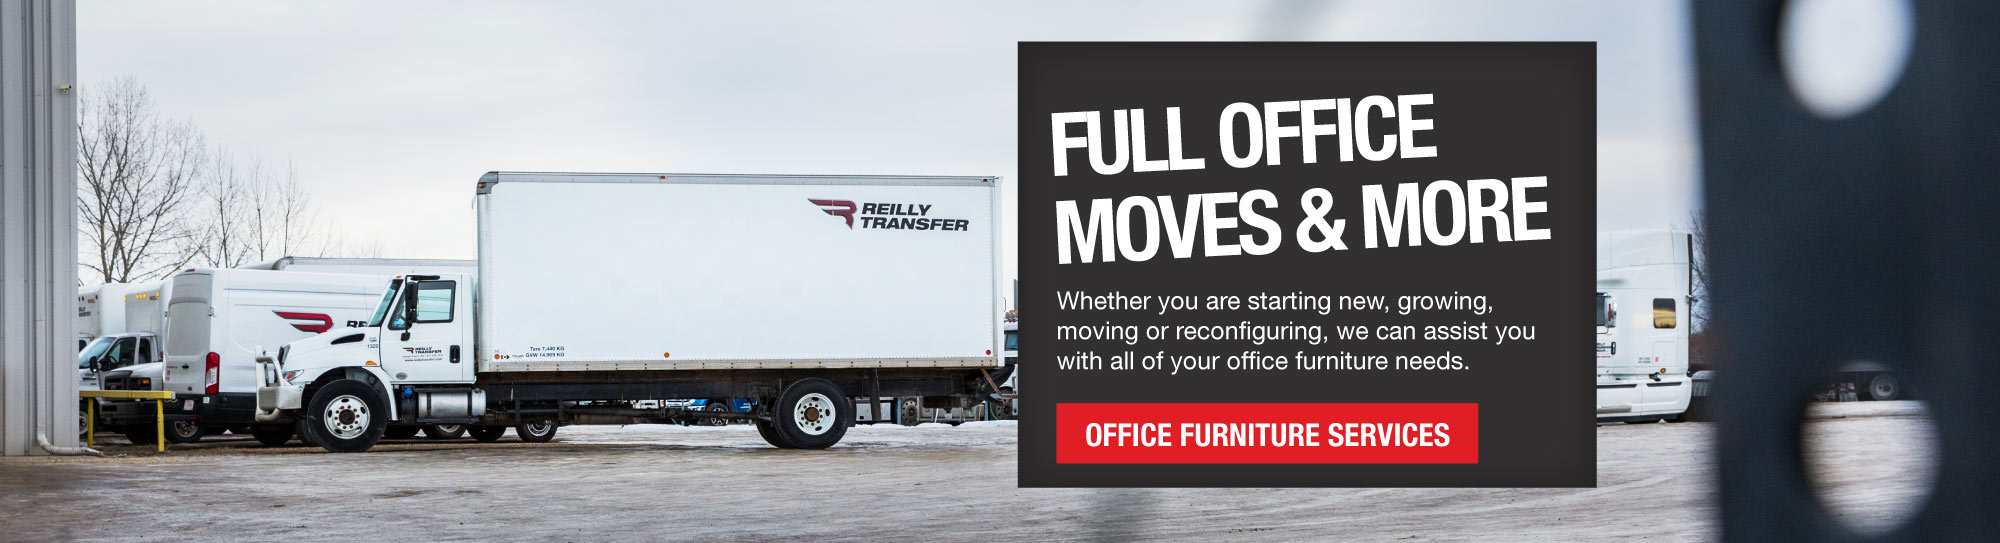 Office Furniture Services - Oilfield Hauling, Camp and Crew Transportation Services Grande Prairie